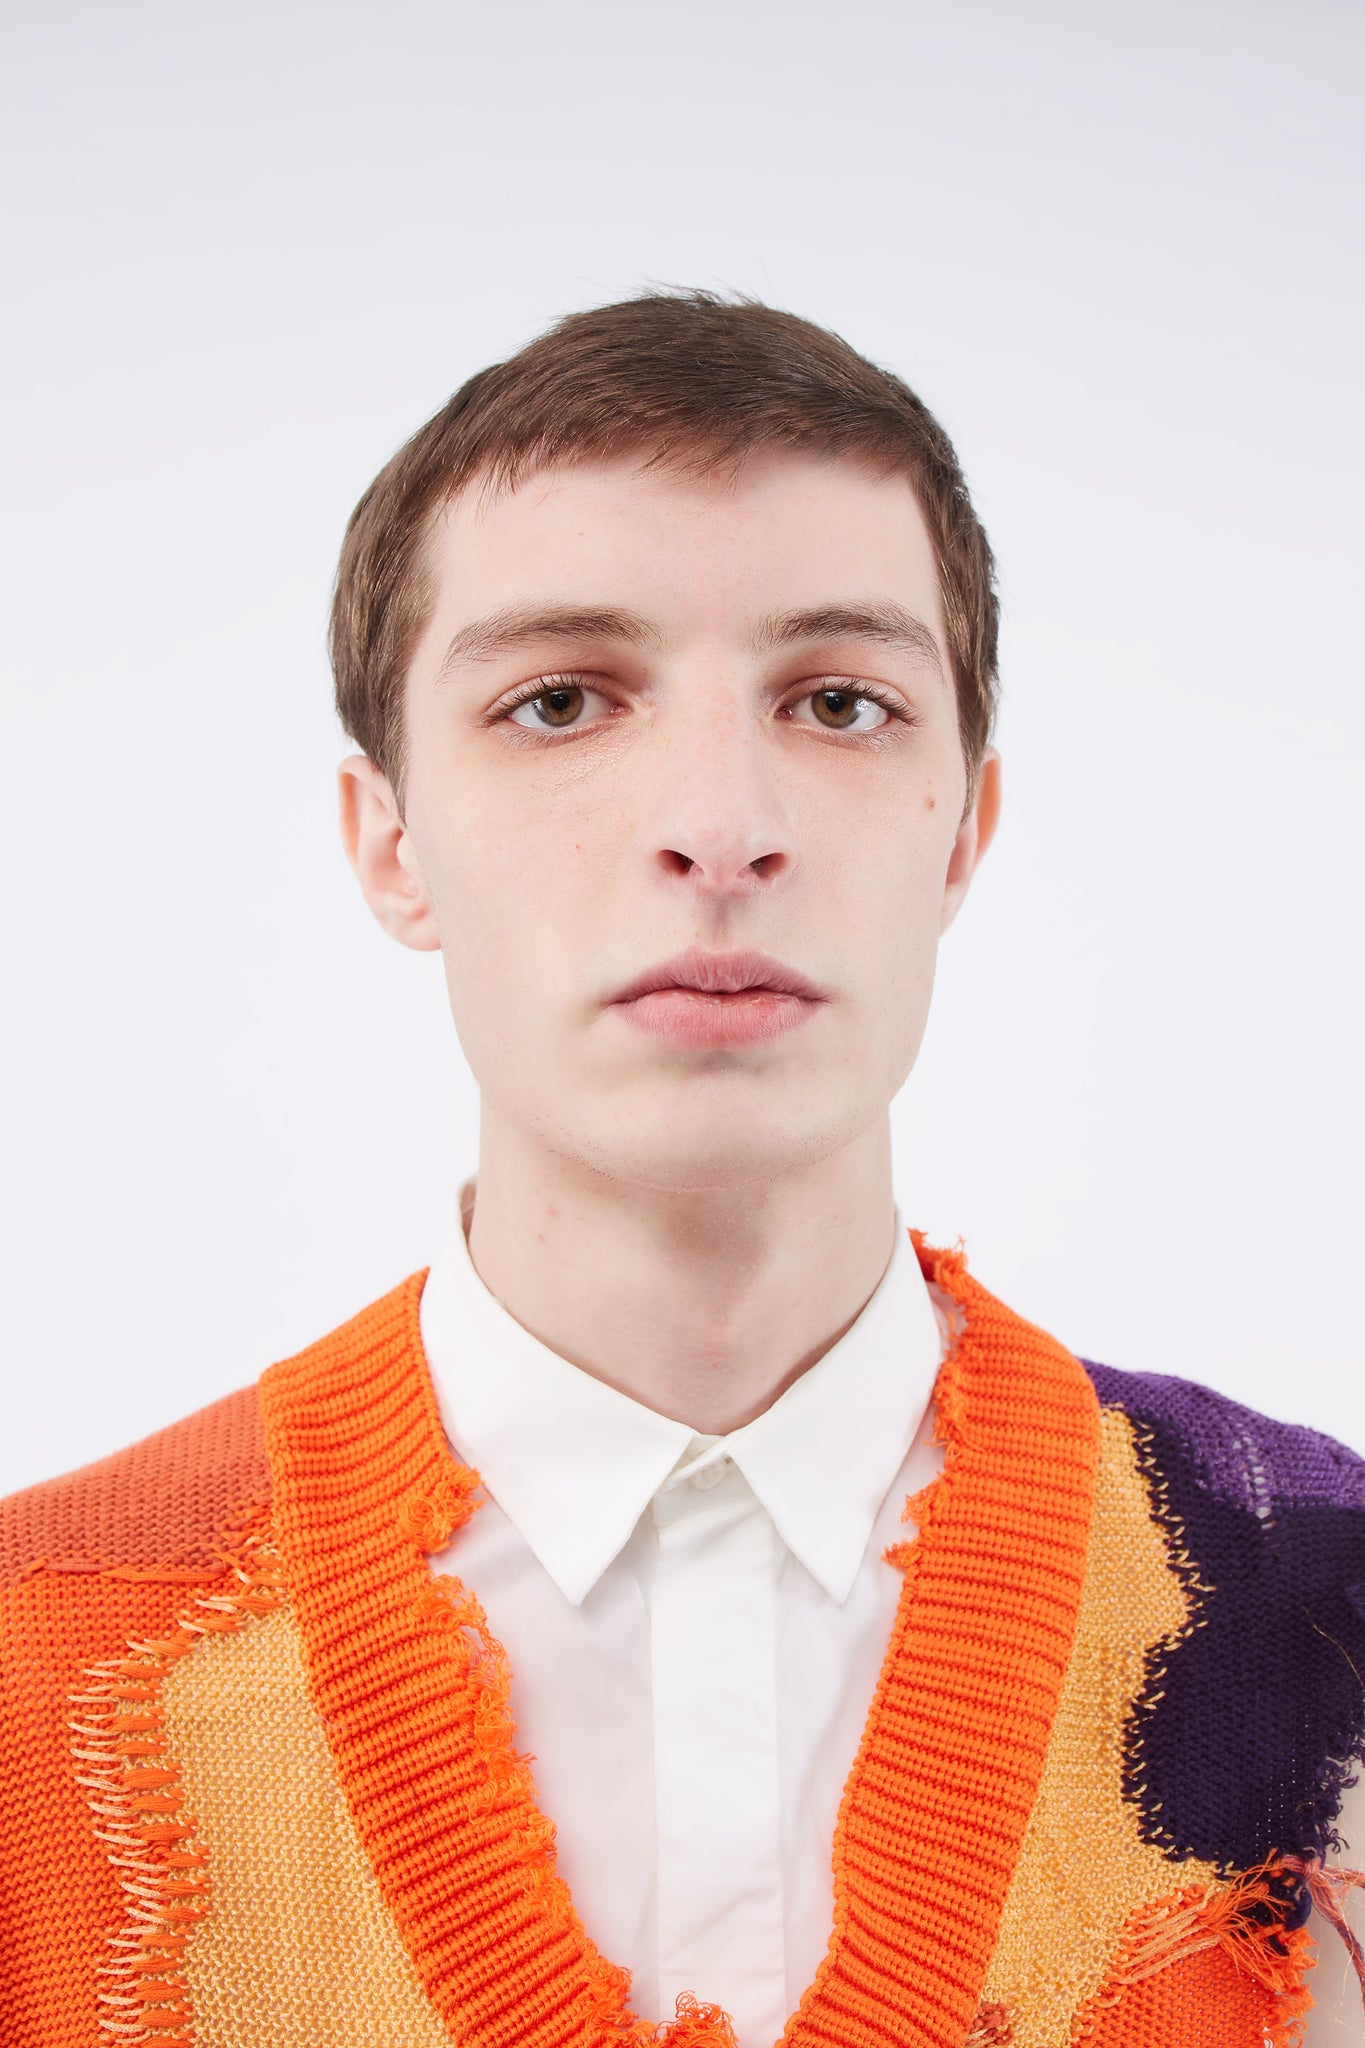 Kurt Cutaway Sweater Mixed Orange